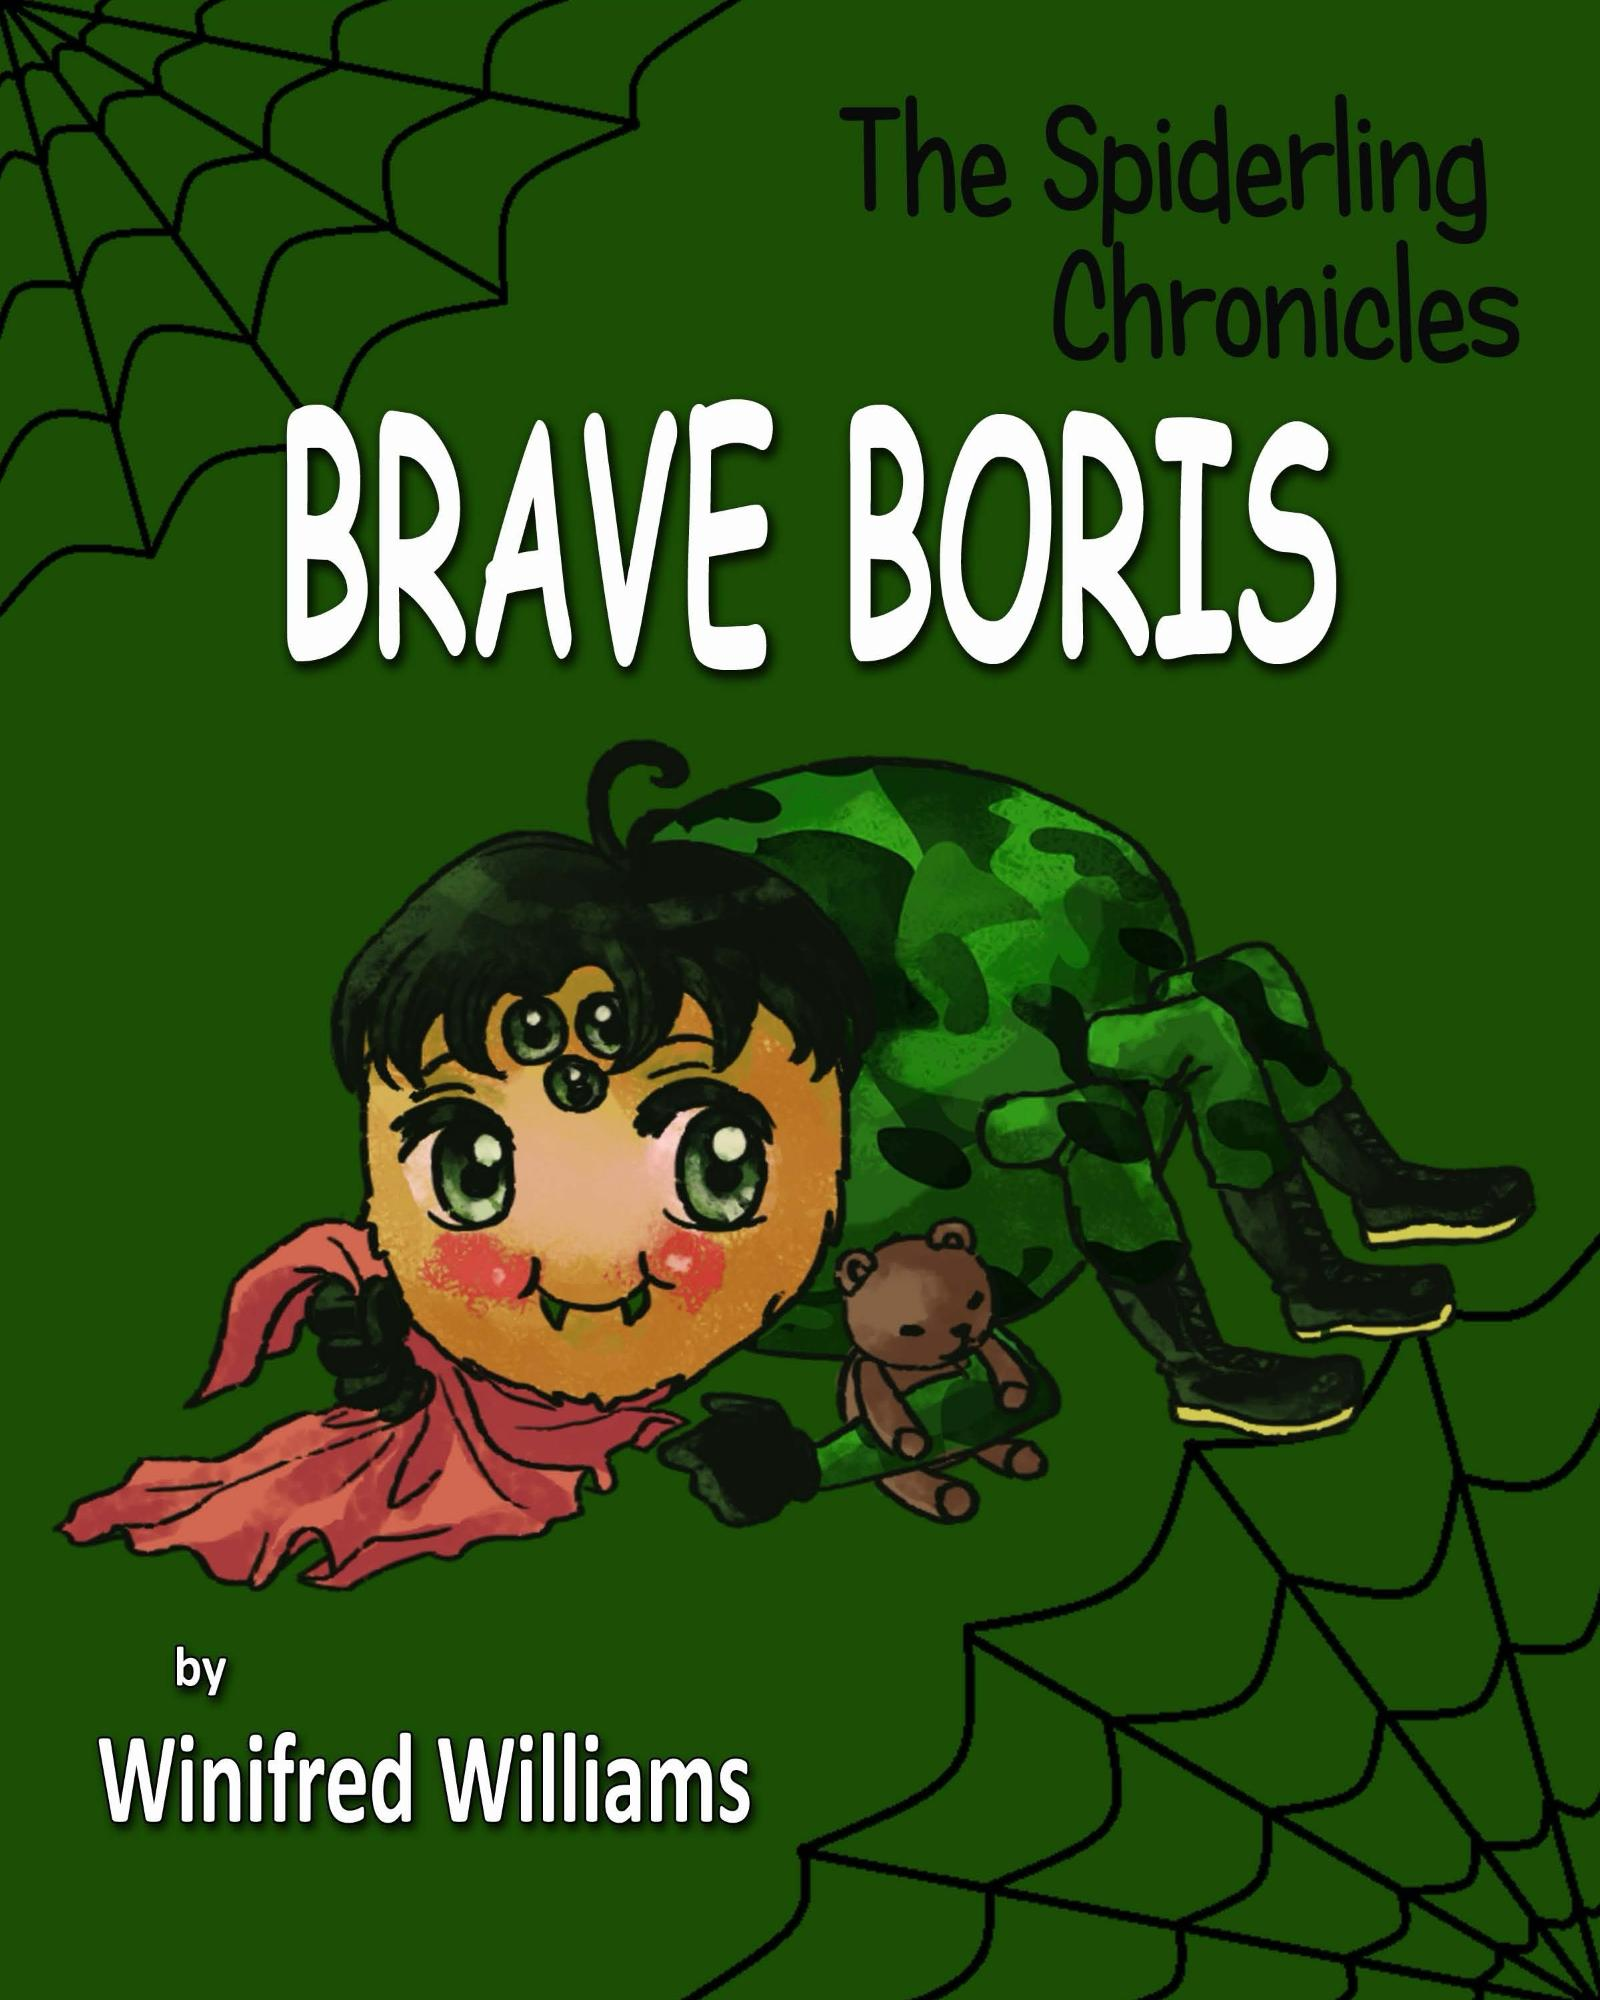 The Spiderling Chronicles: Brave Boris